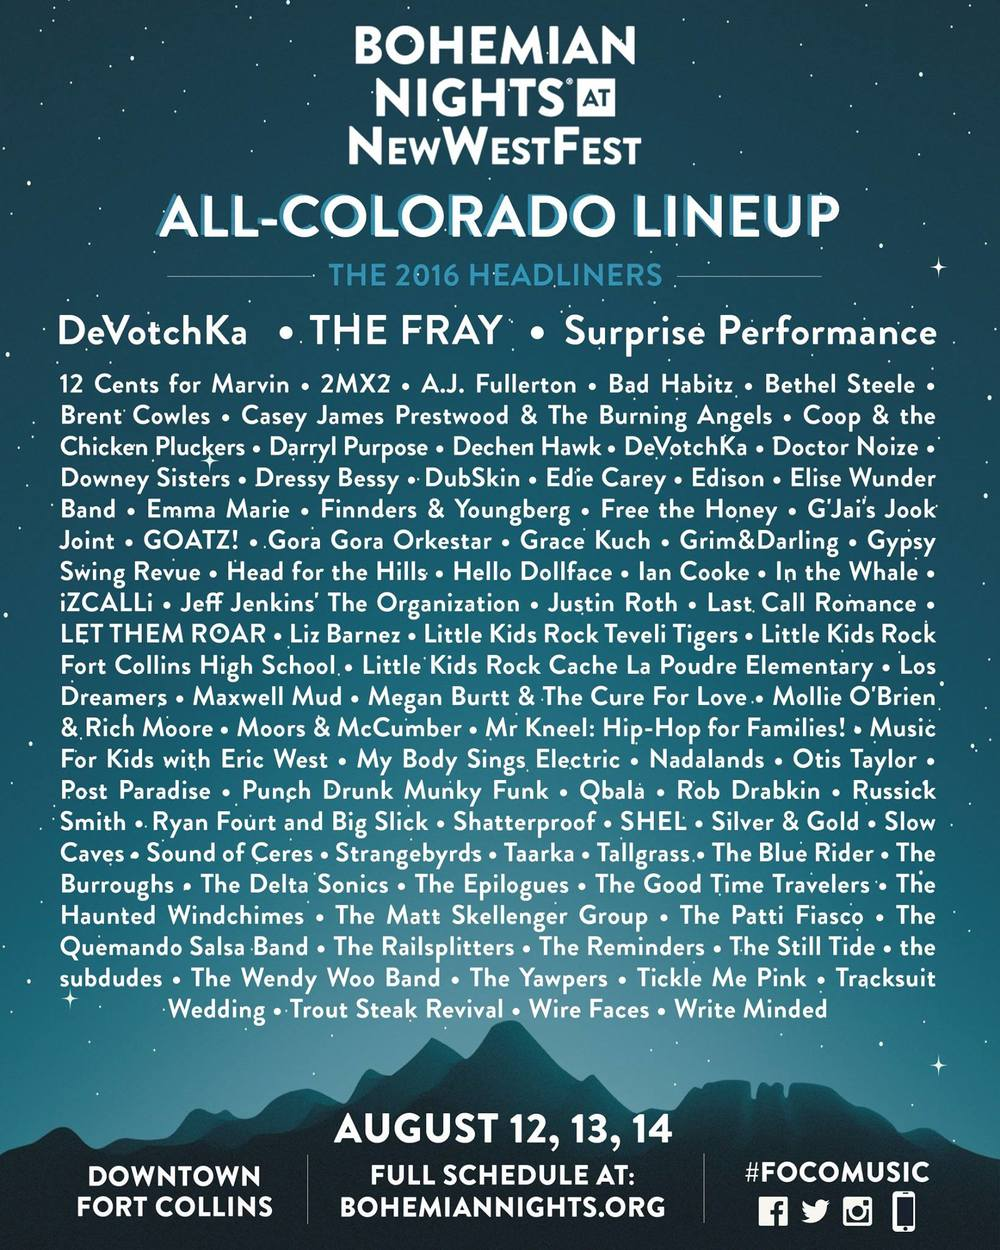 2016 Bohemian Nights @ New West Fest Lineup